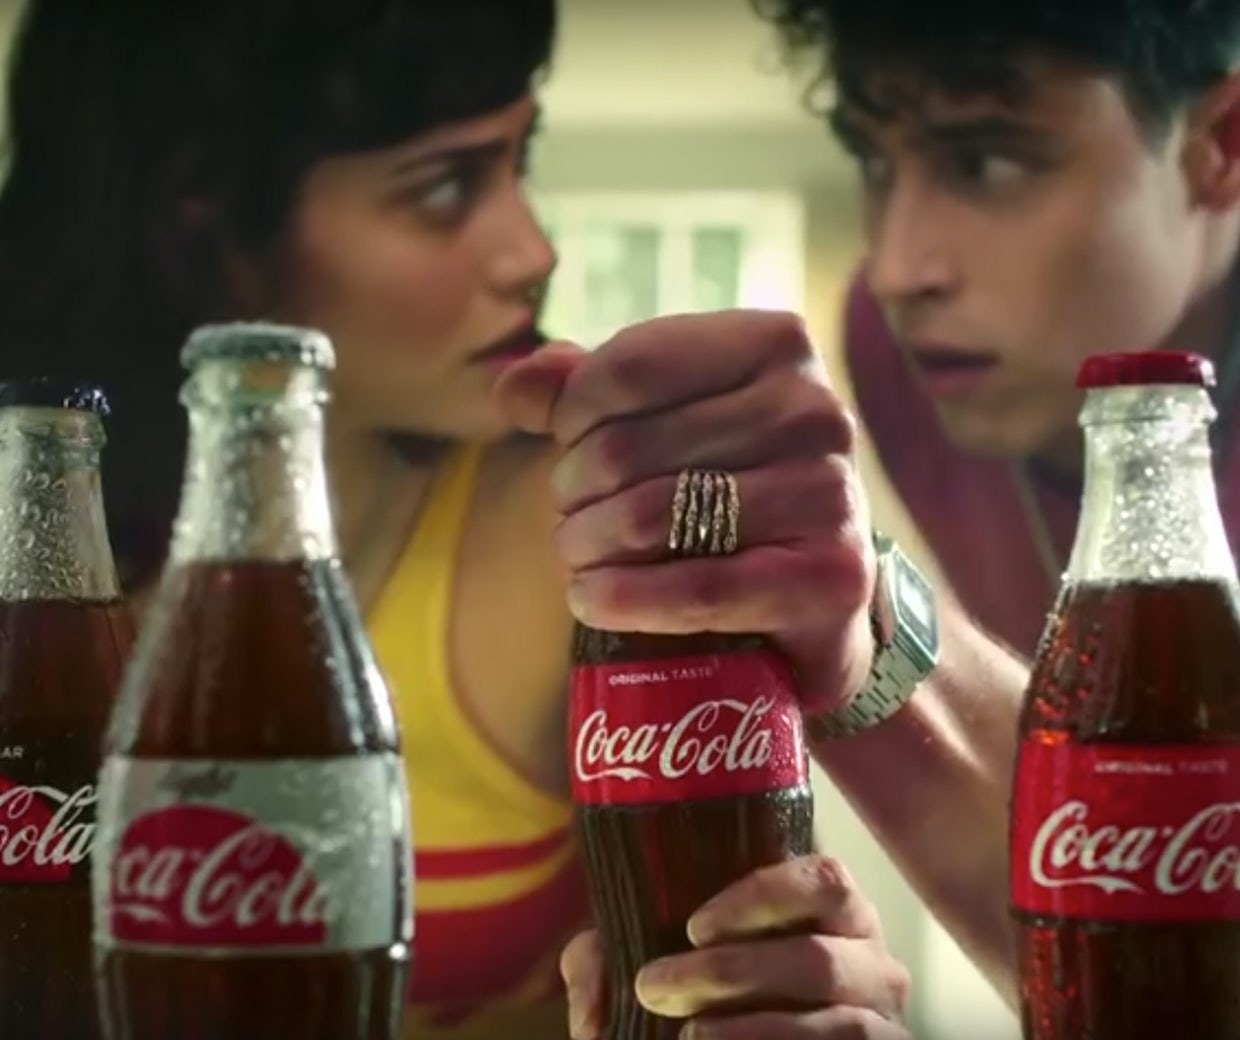 Coca-Cola Touches On Diversity And Inclusion In New Campaign